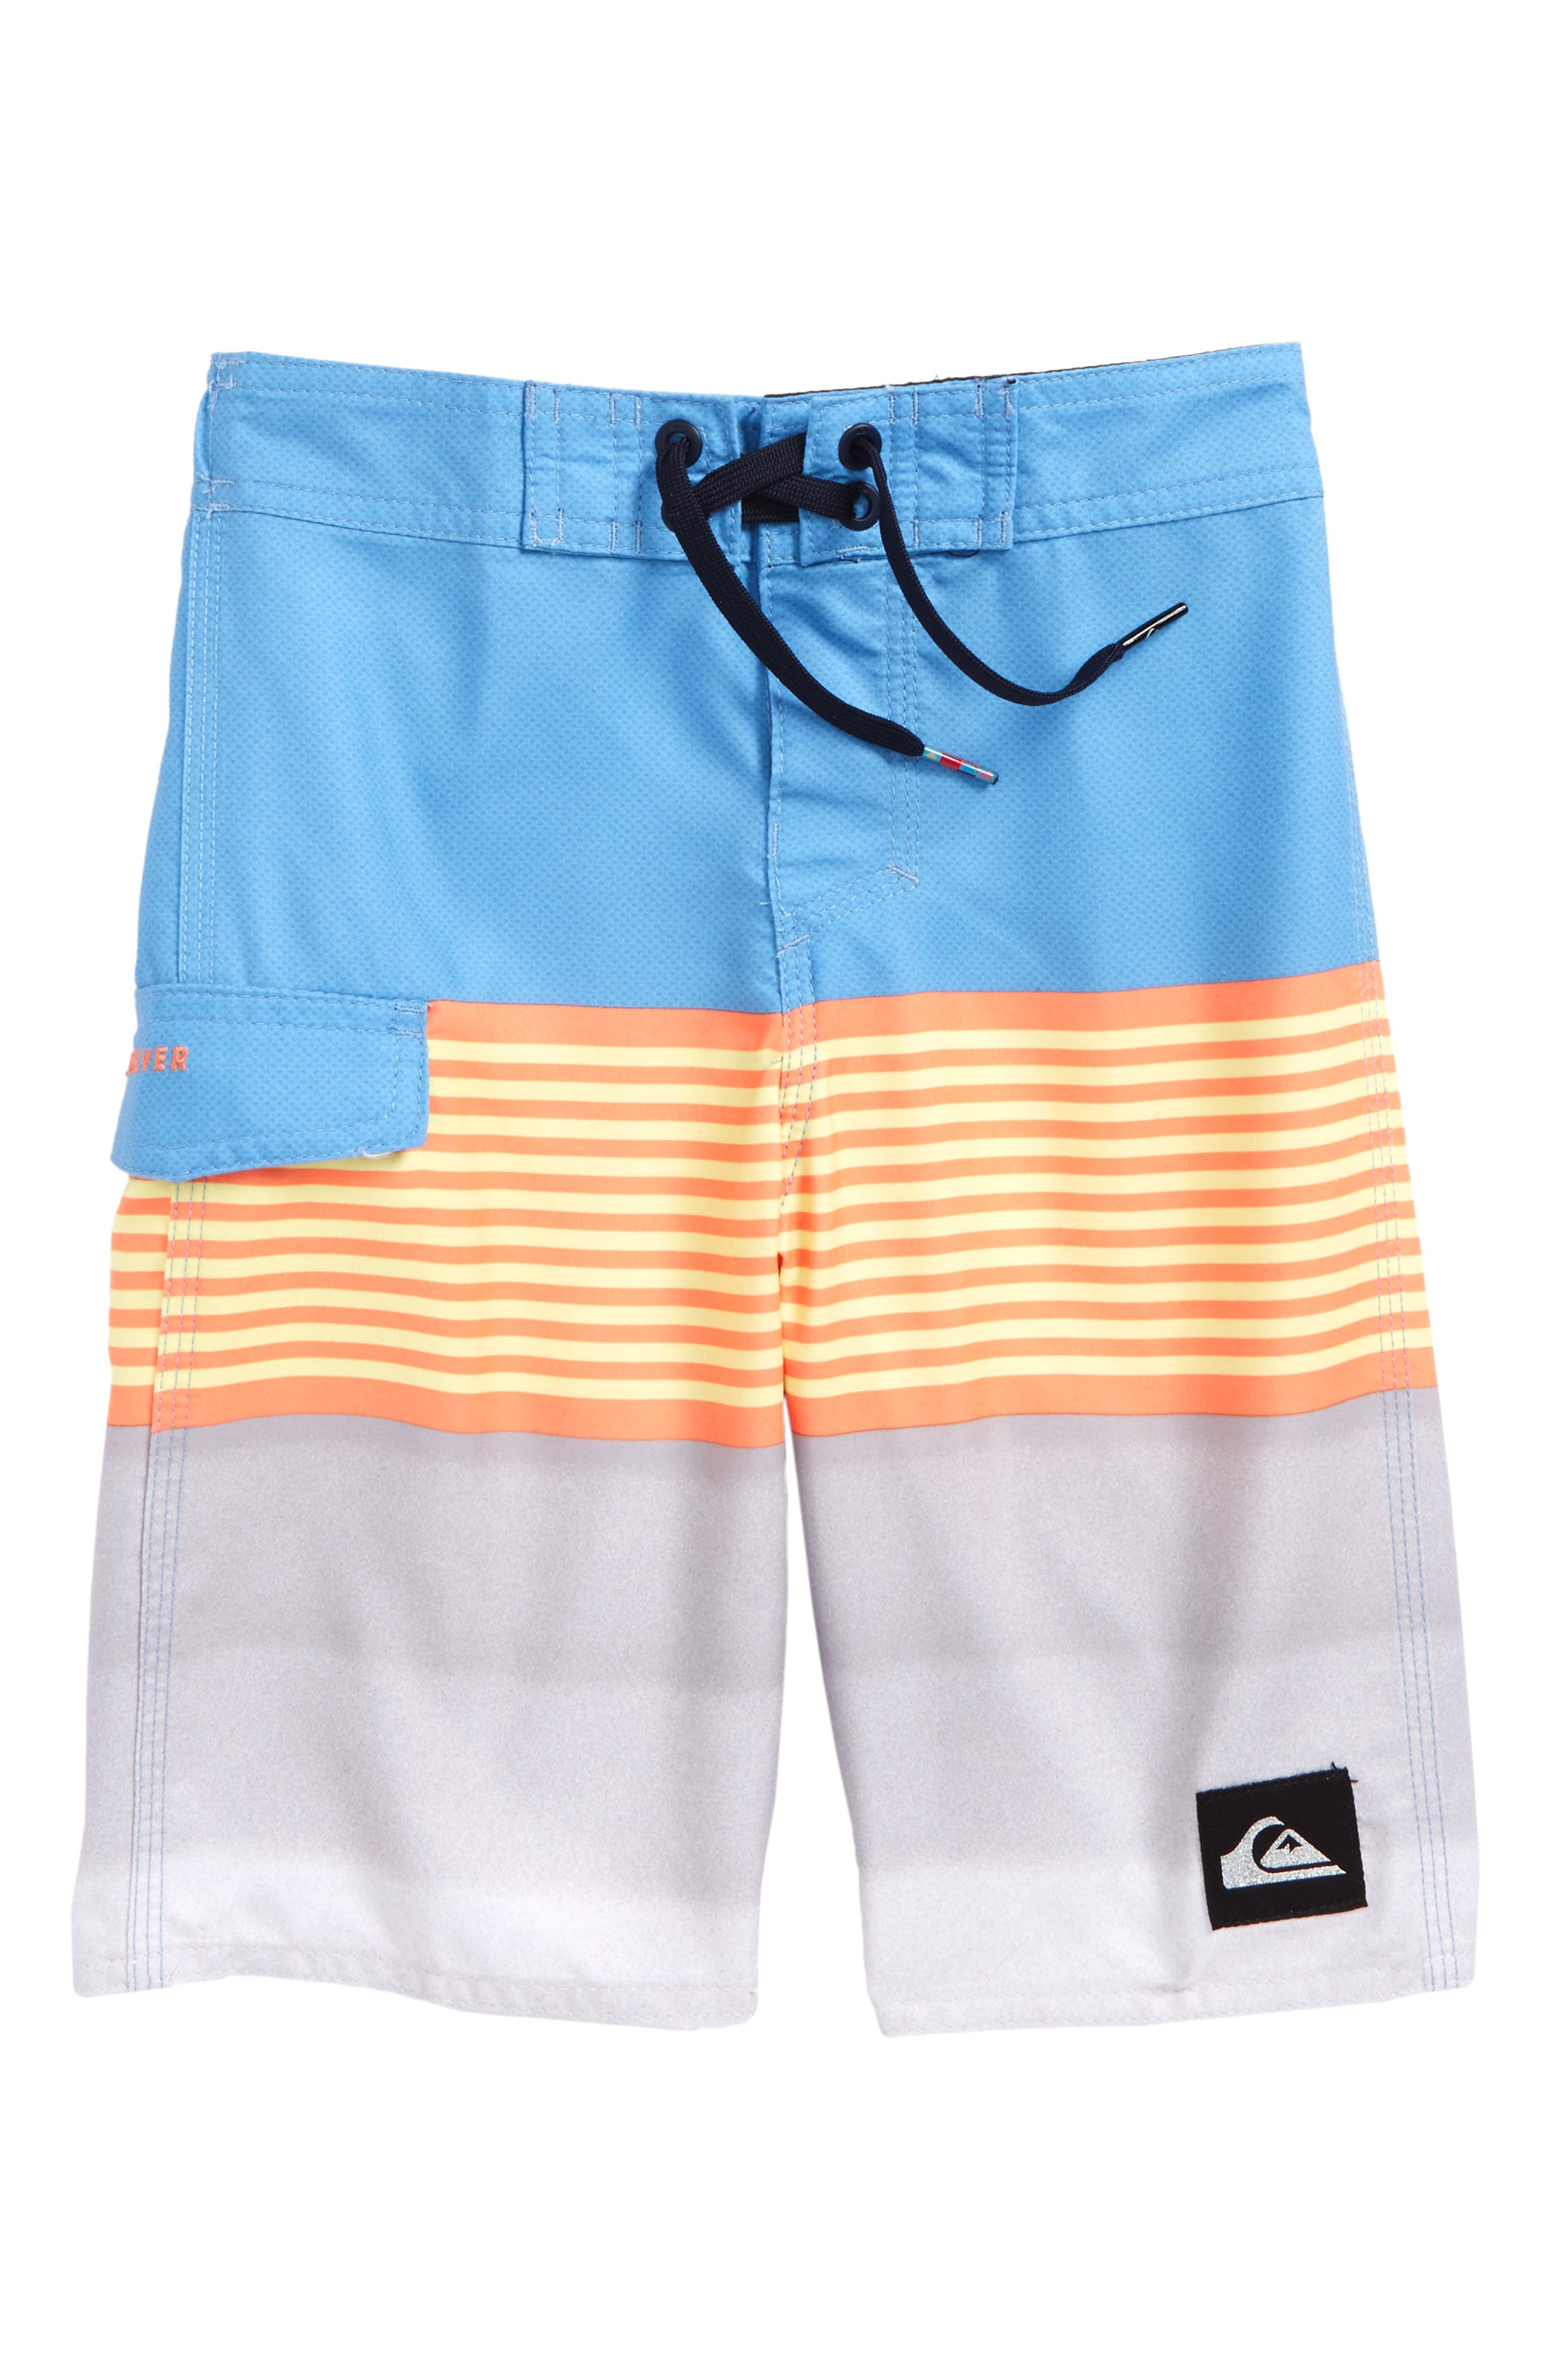 Main Image - Quiksilver Division Board Shorts (Toddler Boys & Little Boys)